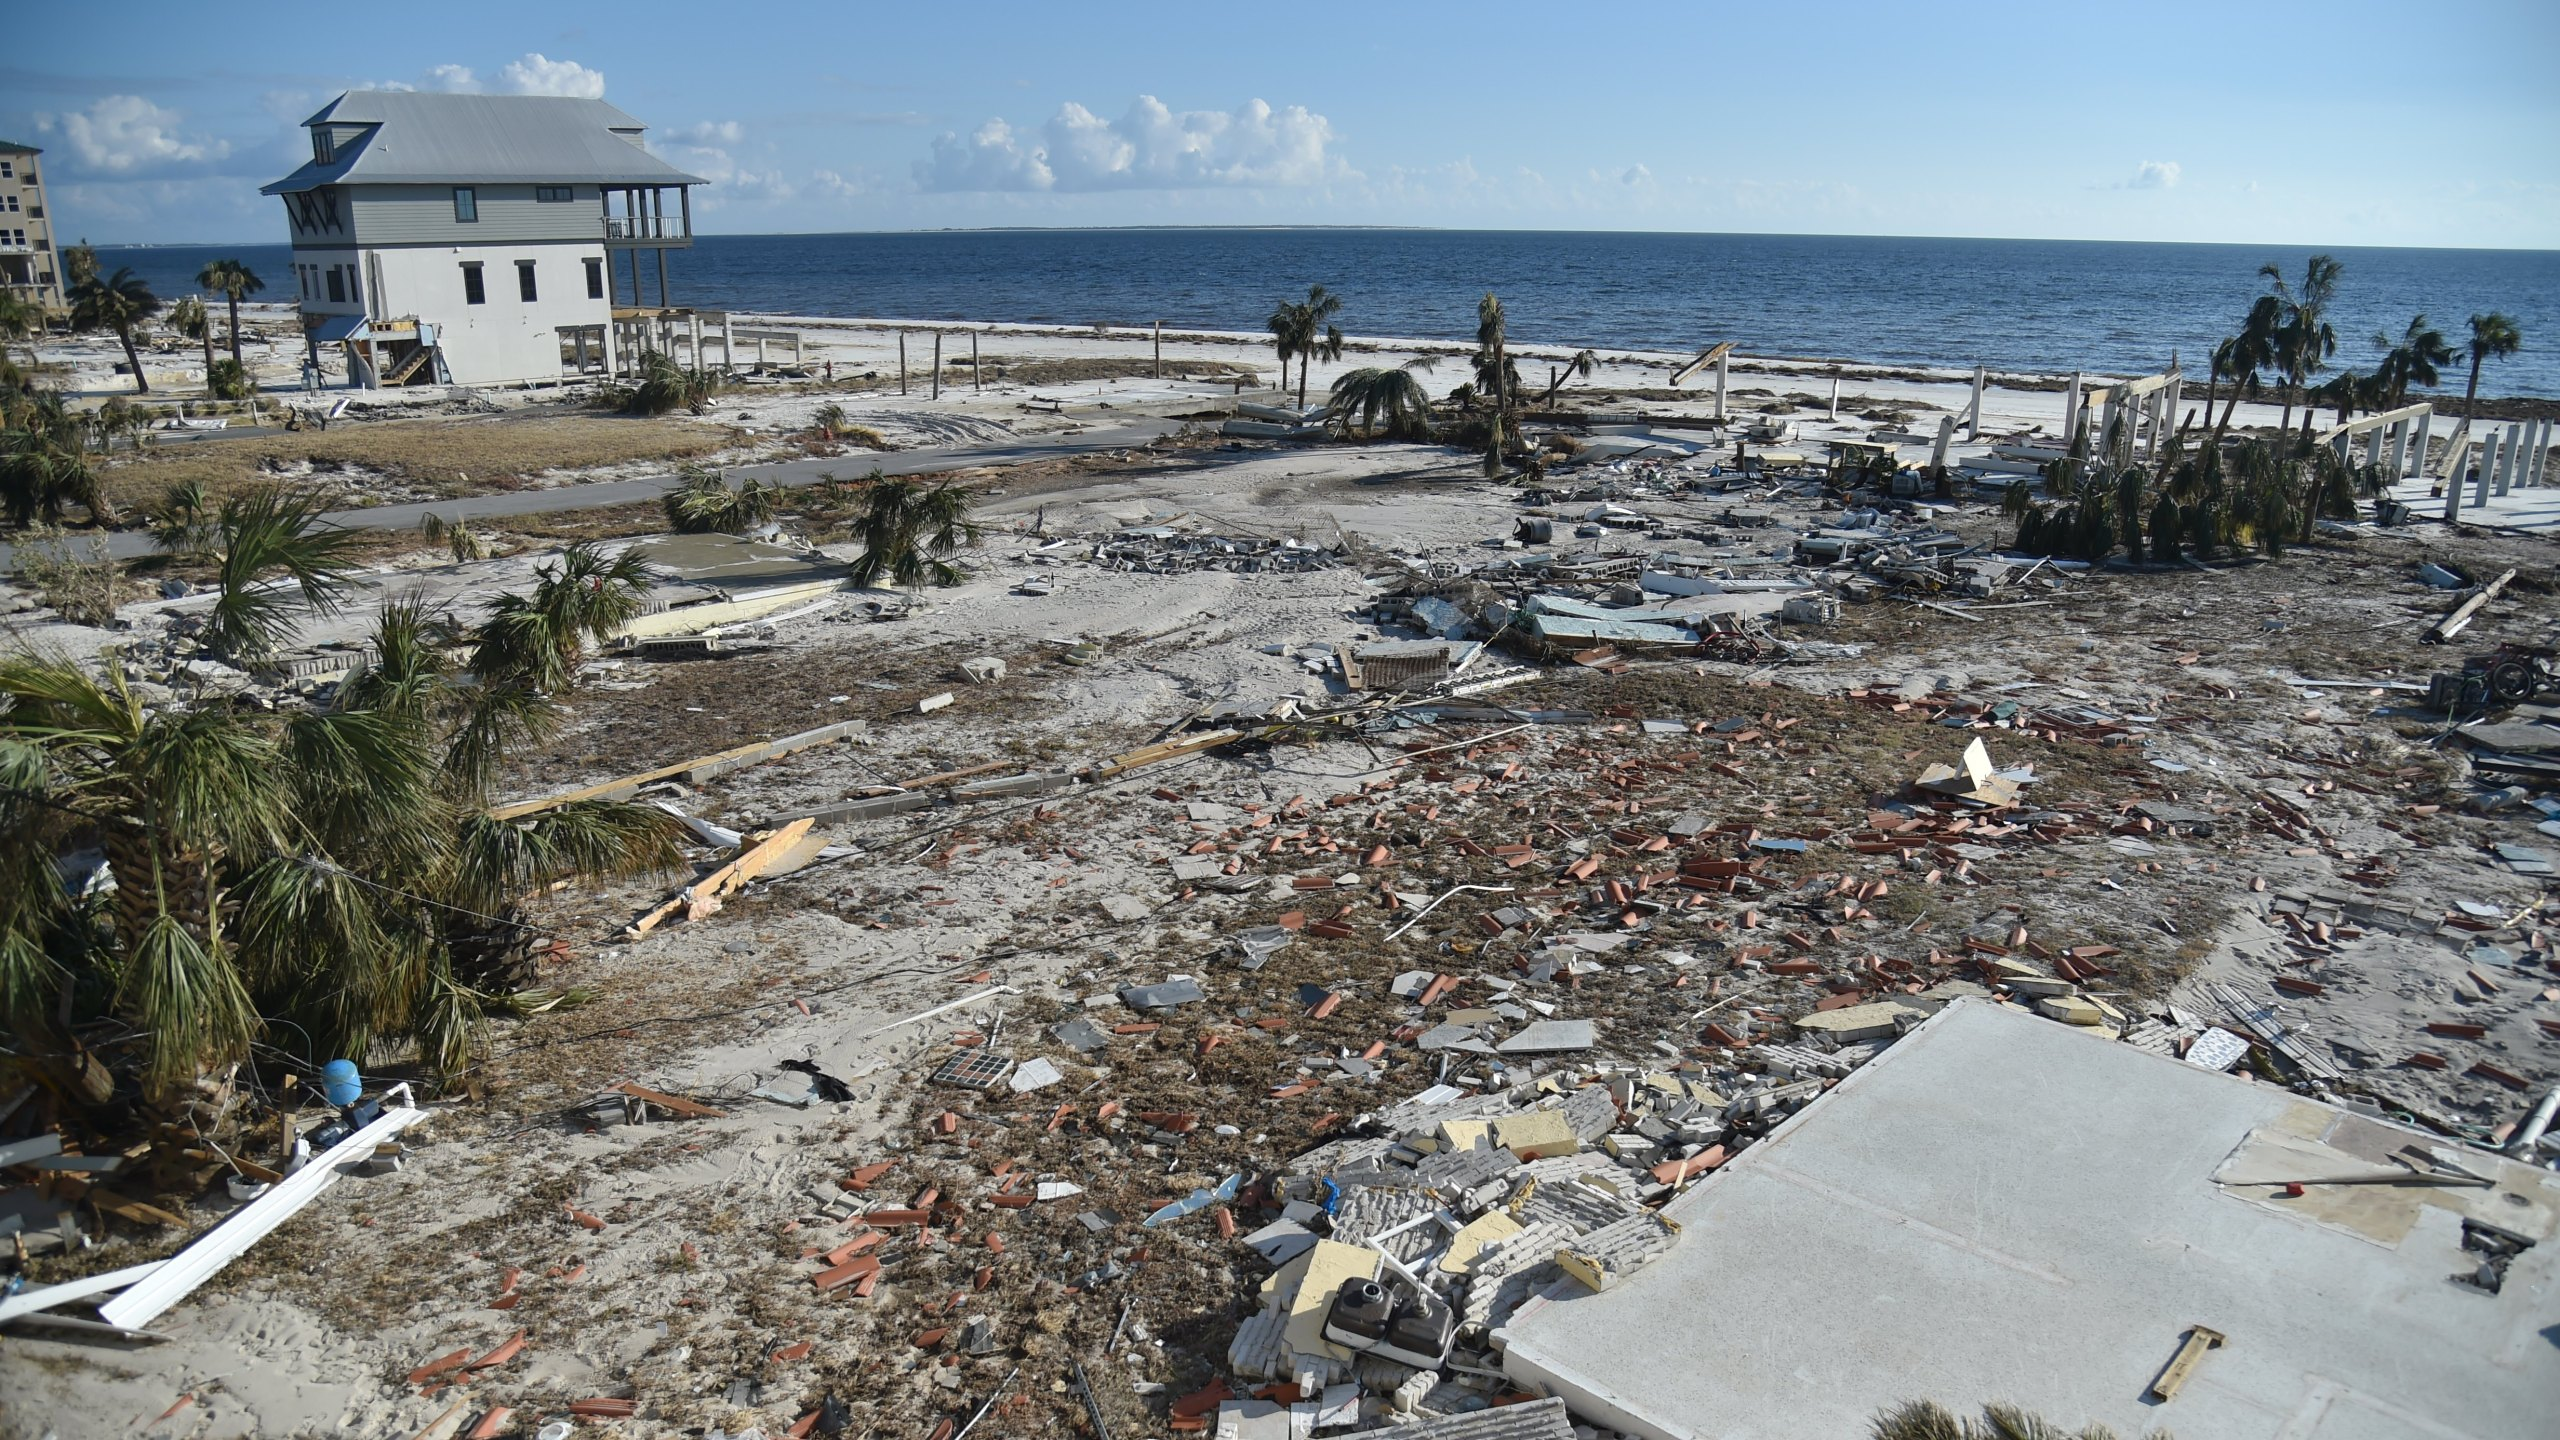 View of the destruction next to a house in Mexico Beach, Florida, on October 14, 2018. (Credit: HECTOR RETAMAL/AFP/Getty Images)